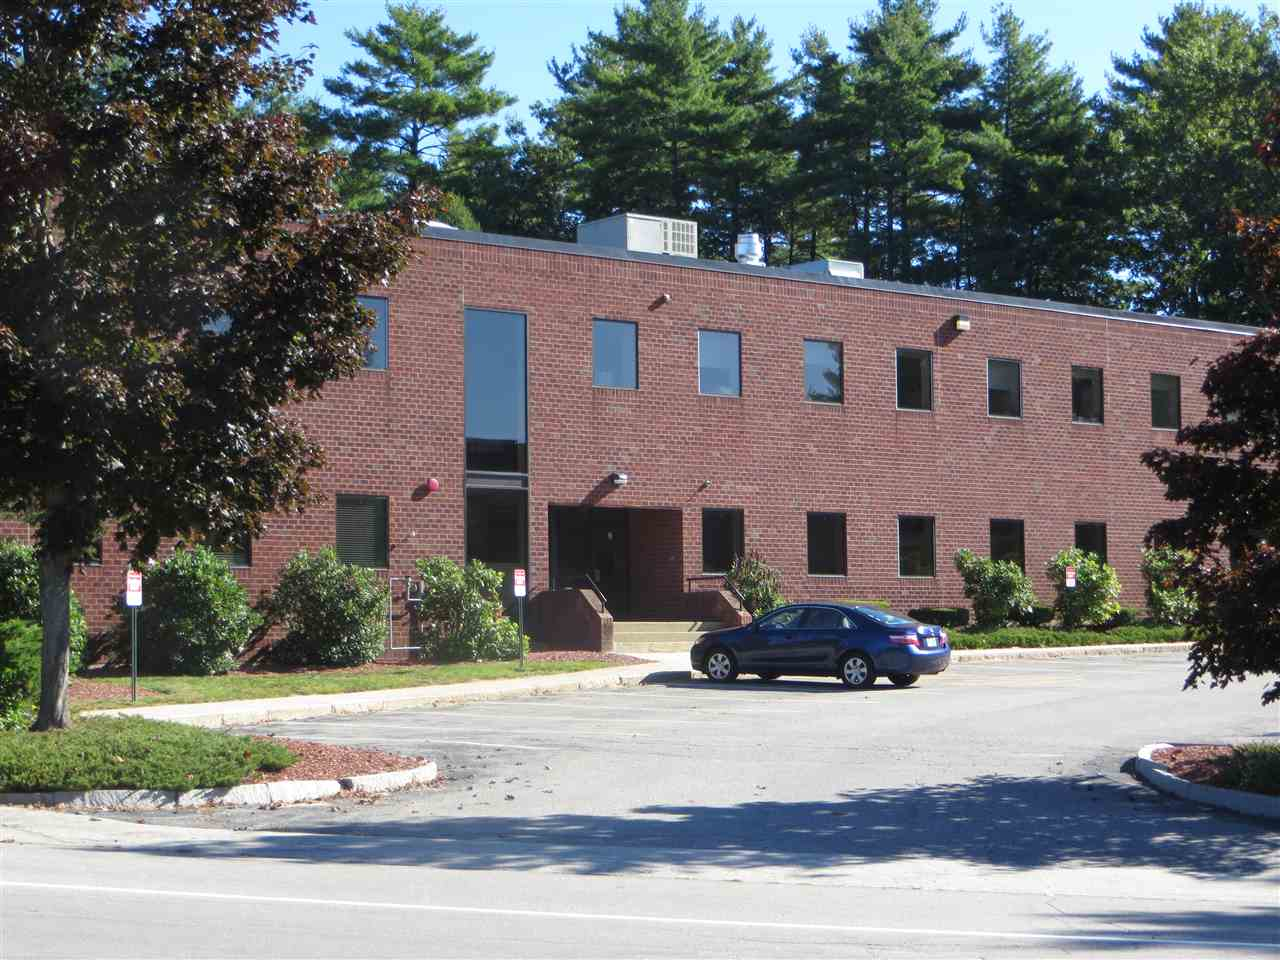 MLS 4725859: 9 Executive Park Drive, Merrimack NH